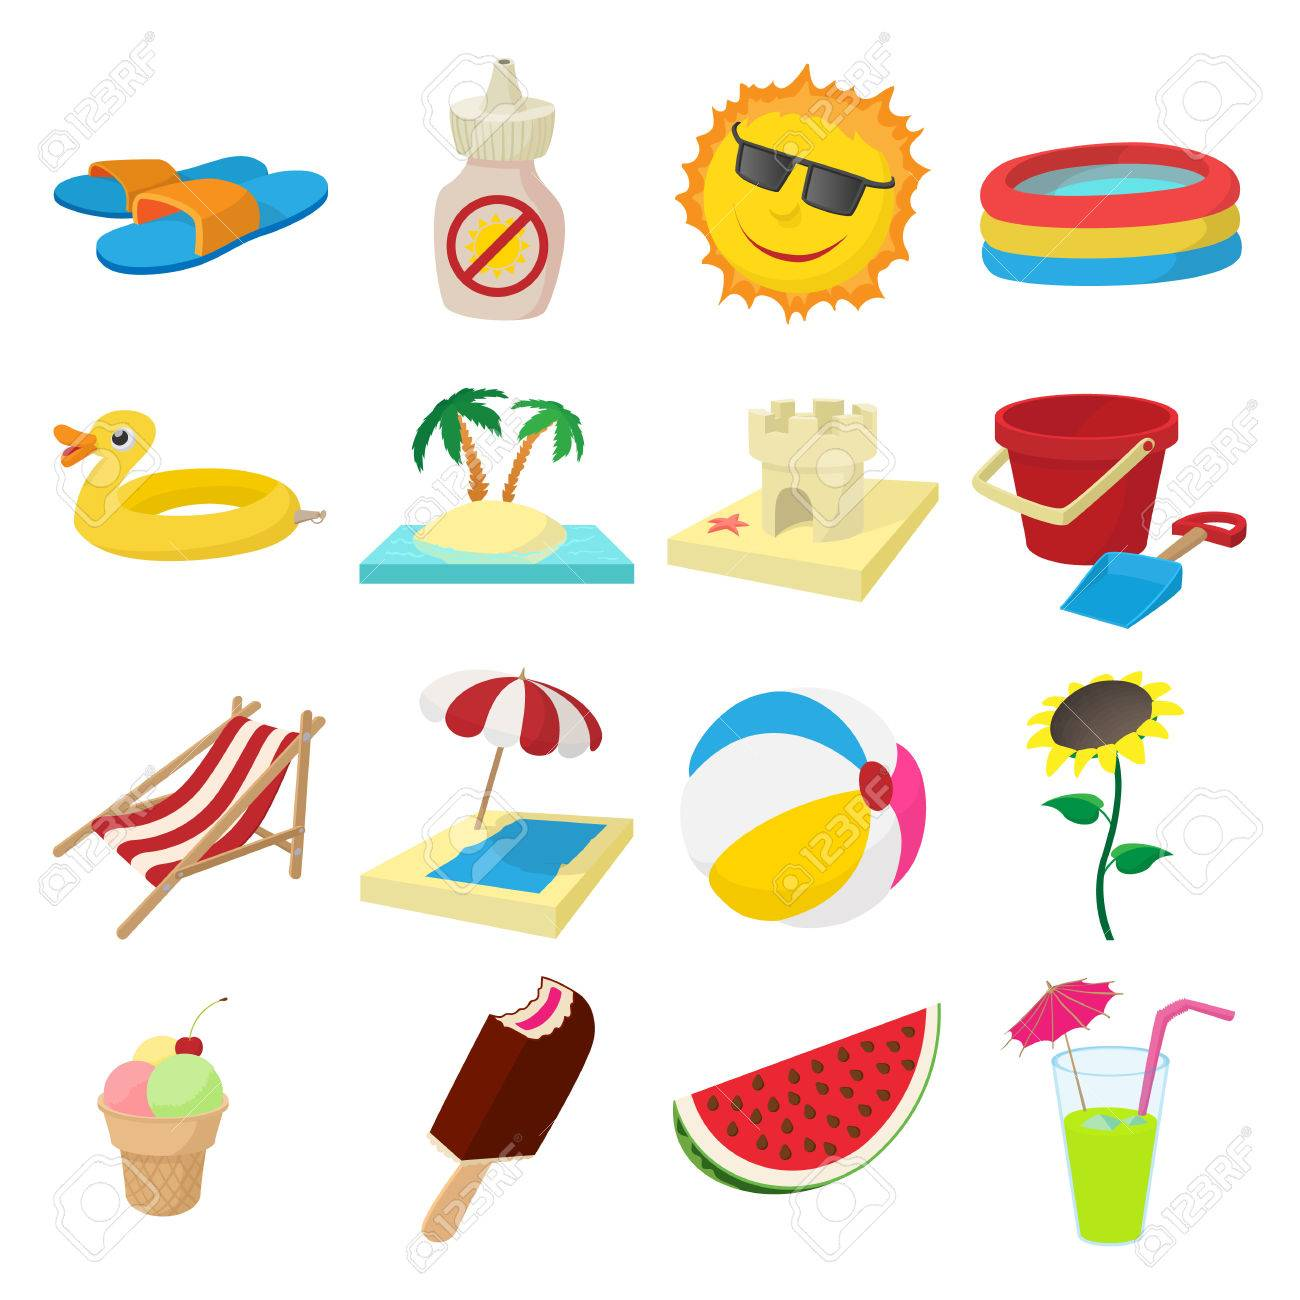 summer icons set in cartoon style on a white background royalty free cliparts vectors and stock illustration image 53980144 summer icons set in cartoon style on a white background